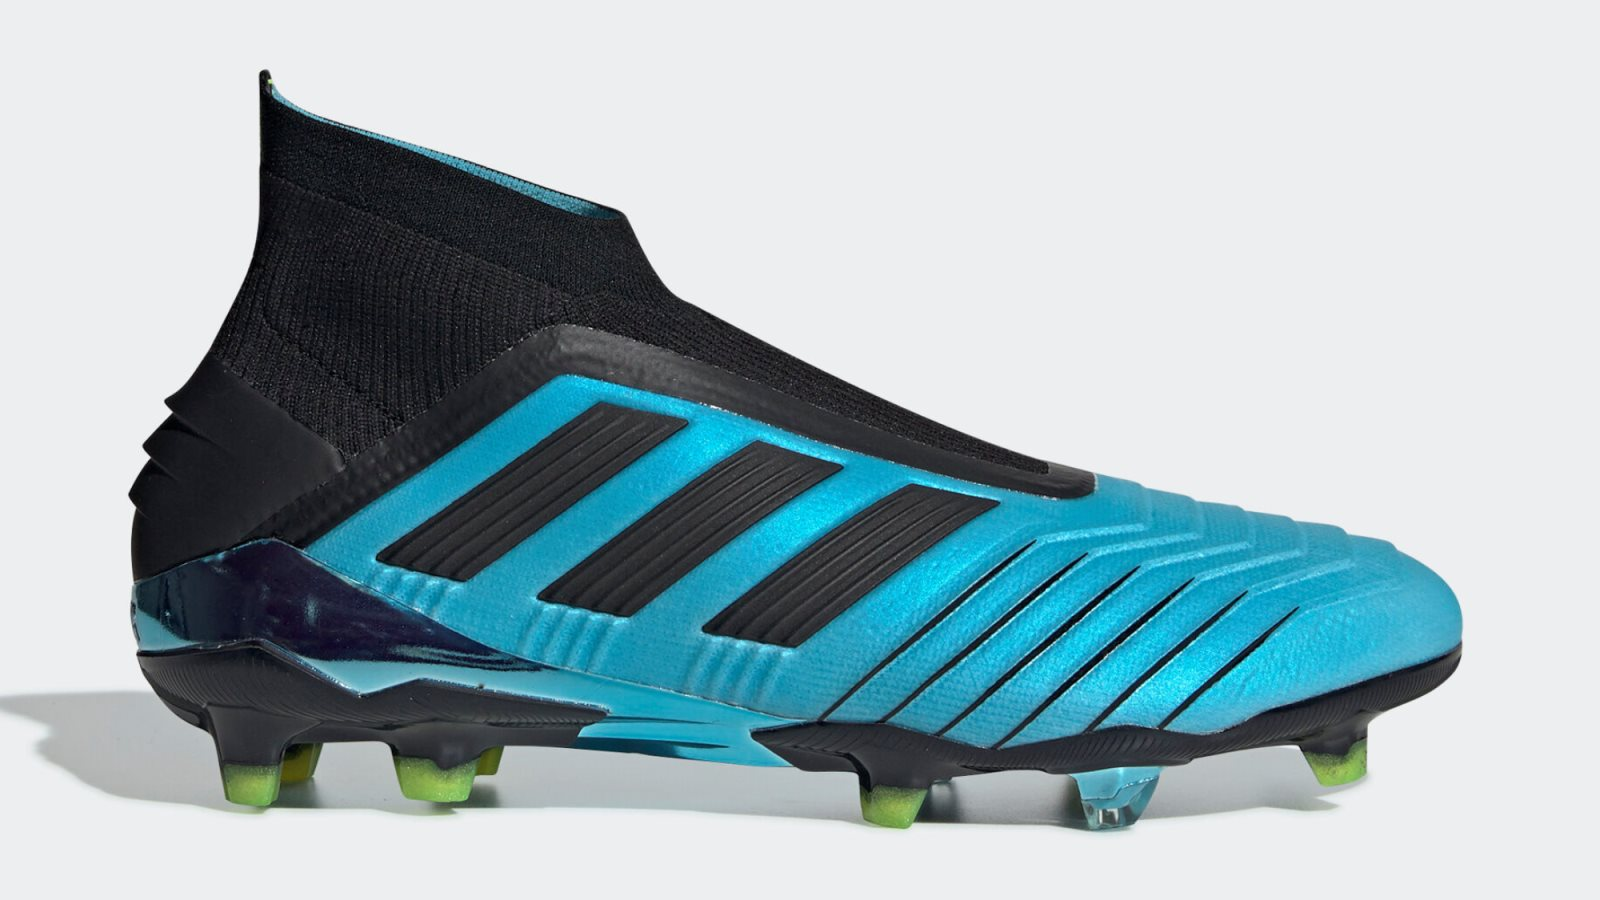 8462c72ee59 Paul Pogba Football Boots